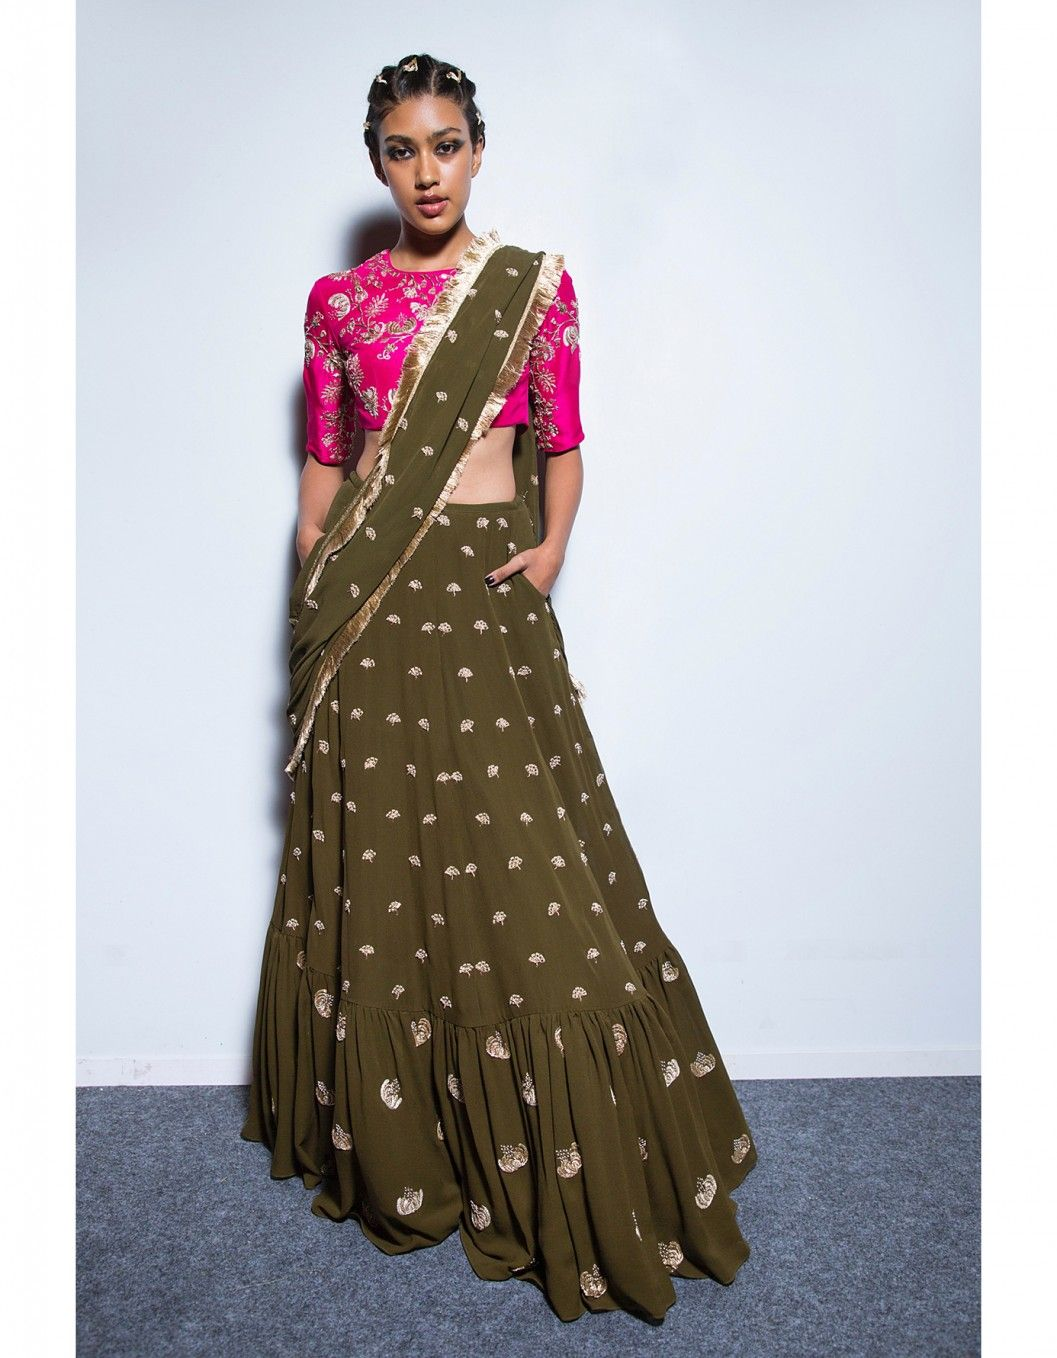 b5194310dd Buy Hot Pink and Olive Sabira Lehenga Set by PAYAL SINGHAL Available at  Ogaan Online Shop